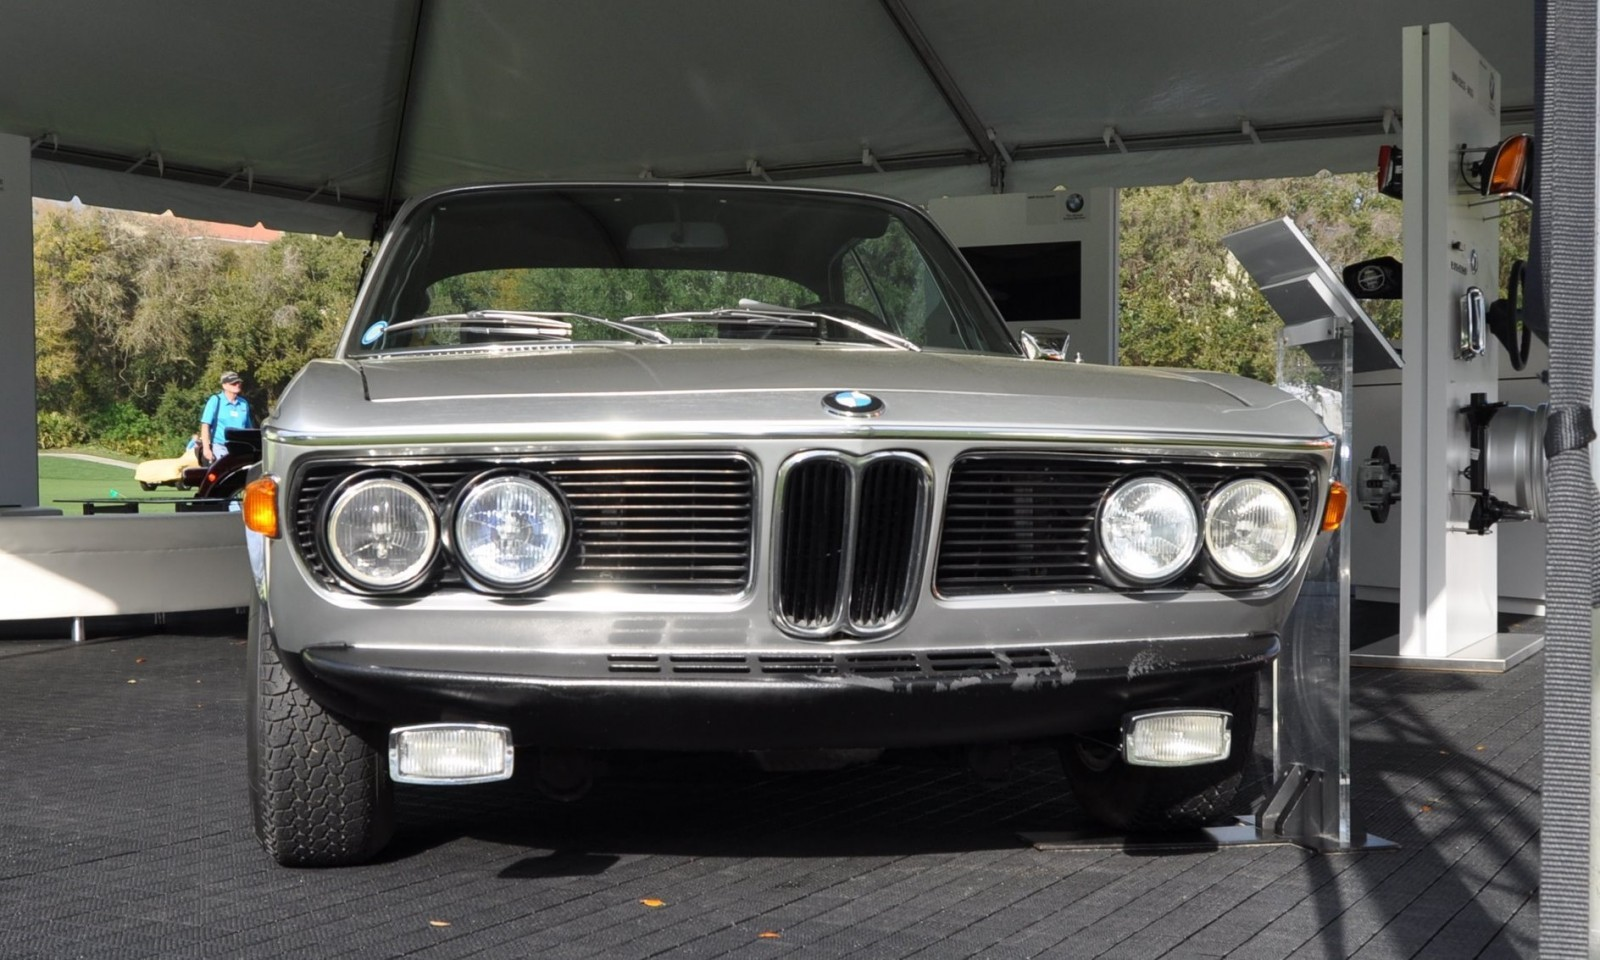 Amelia Island 2015 - BMW Brings 507, M1, CSL and tii To Join 2015 X5 M and 2015 650i M Sport 12